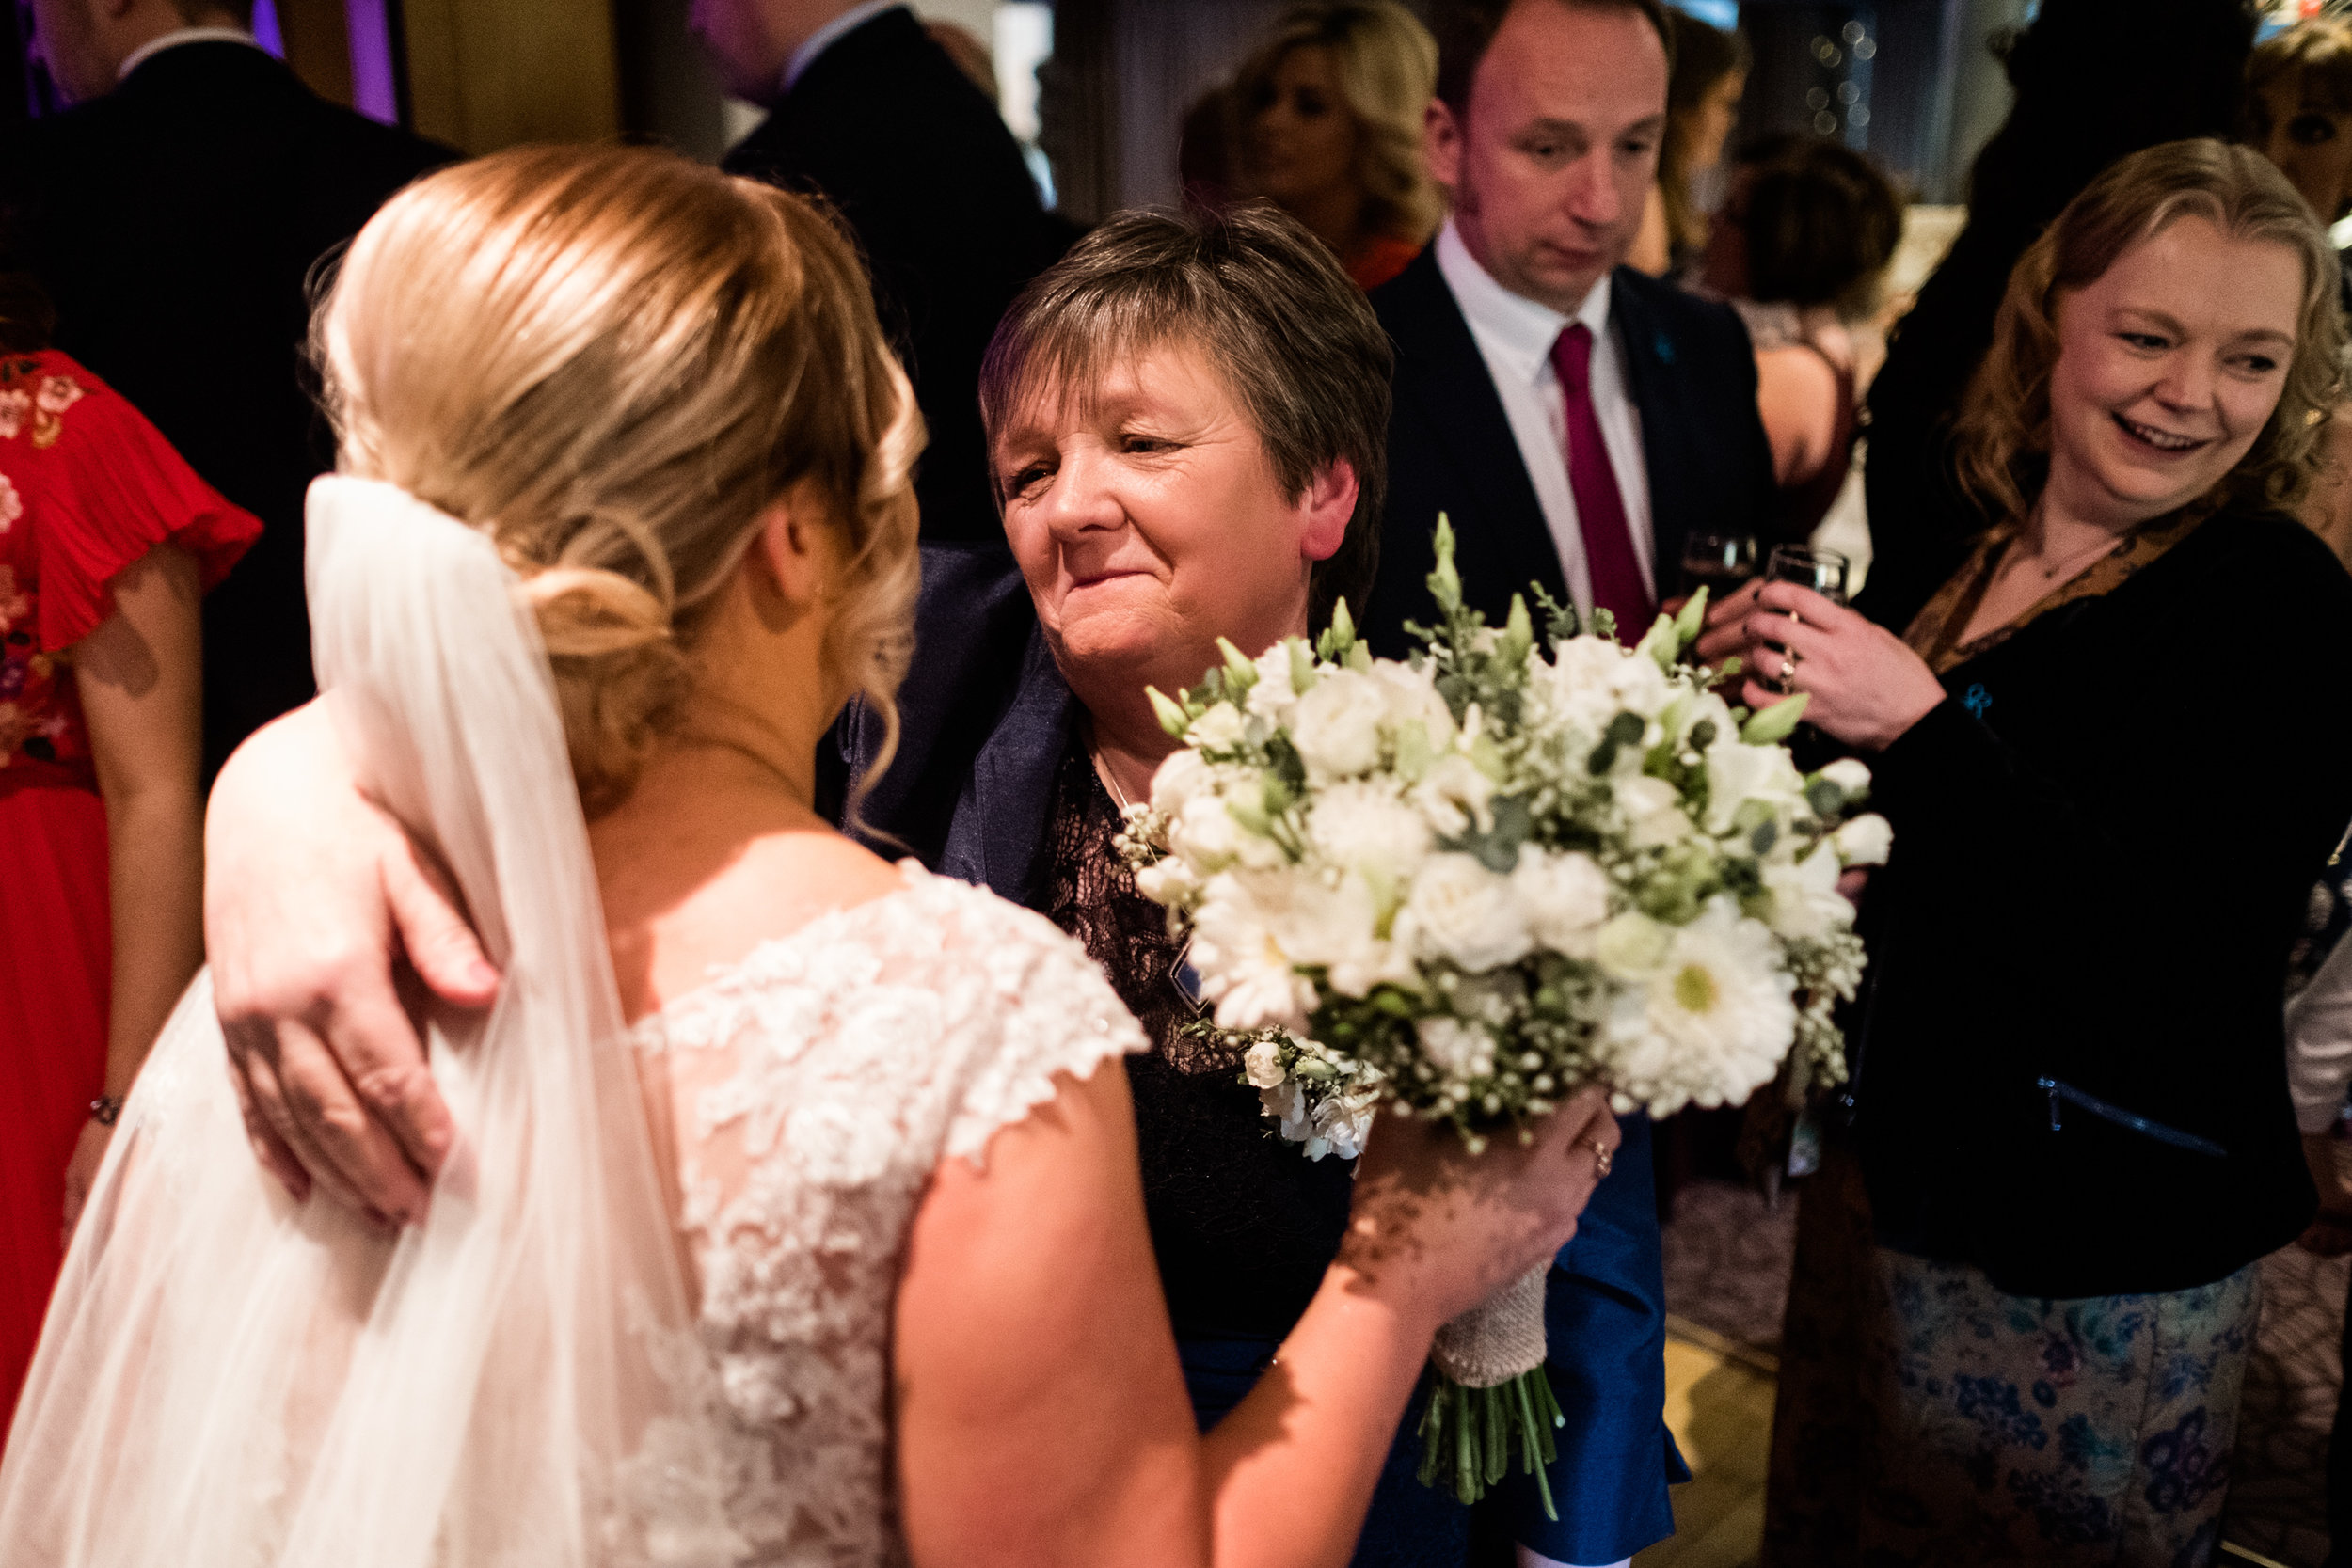 Autumn Wedding Photography at The Three Horseshoes, Blackshaw Moor, Staffordshire Moorlands - Jenny Harper-33.jpg